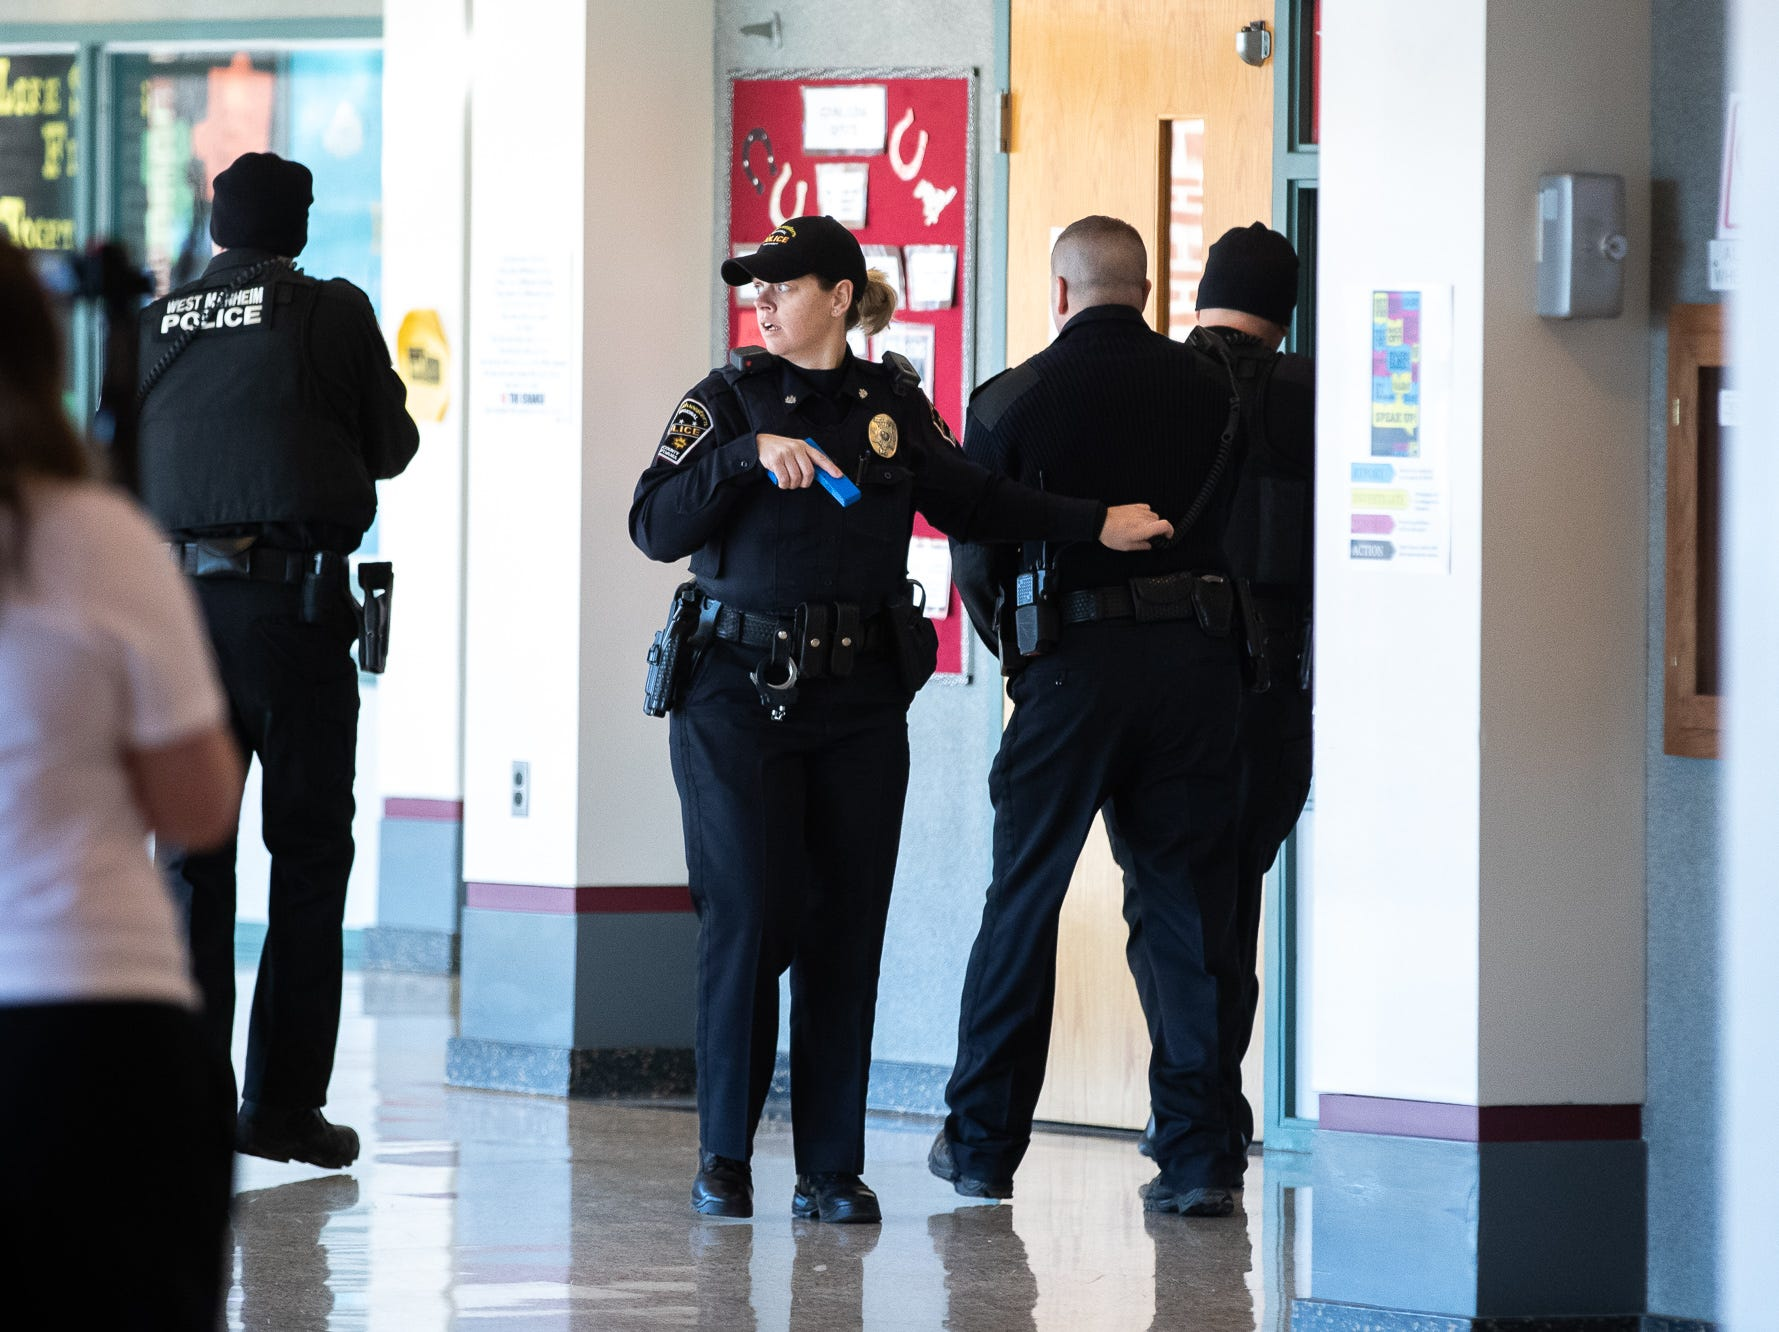 Police officers clear hallways while they take part in an active shooter drill at South Western High School, Monday, Jan. 21, 2019, in Penn Township. The drill simulated multiple scenarios involving an active shooter, allowing school security and local law enforcement agencies a hands-on opportunity to drill on engaging an active shooter while also giving school staff experience with how real world scenarios could unfold.